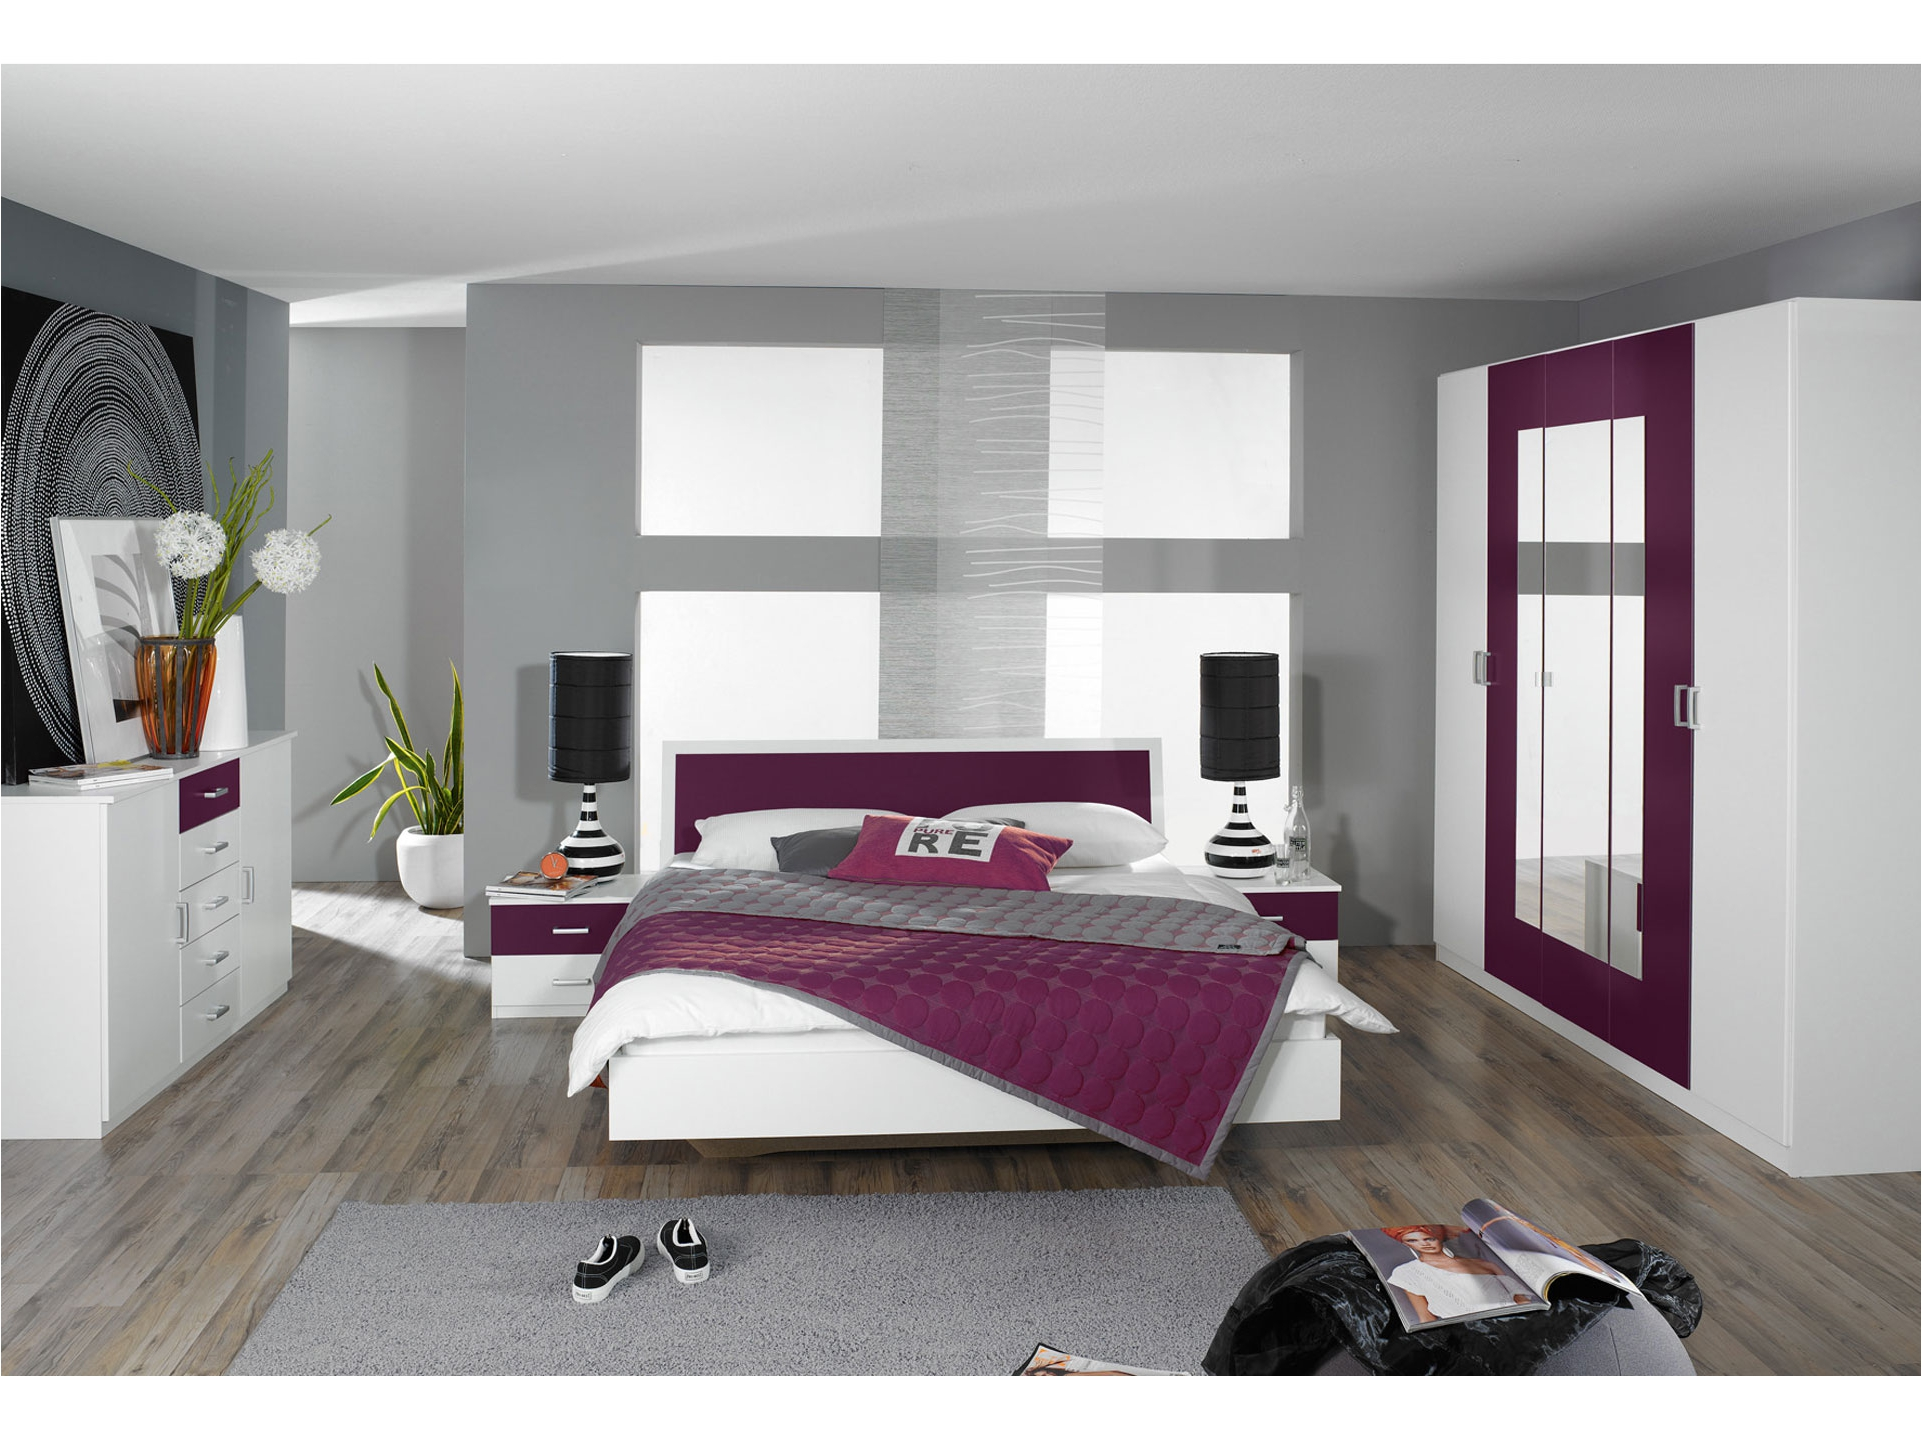 Deco moderne chambre - n15